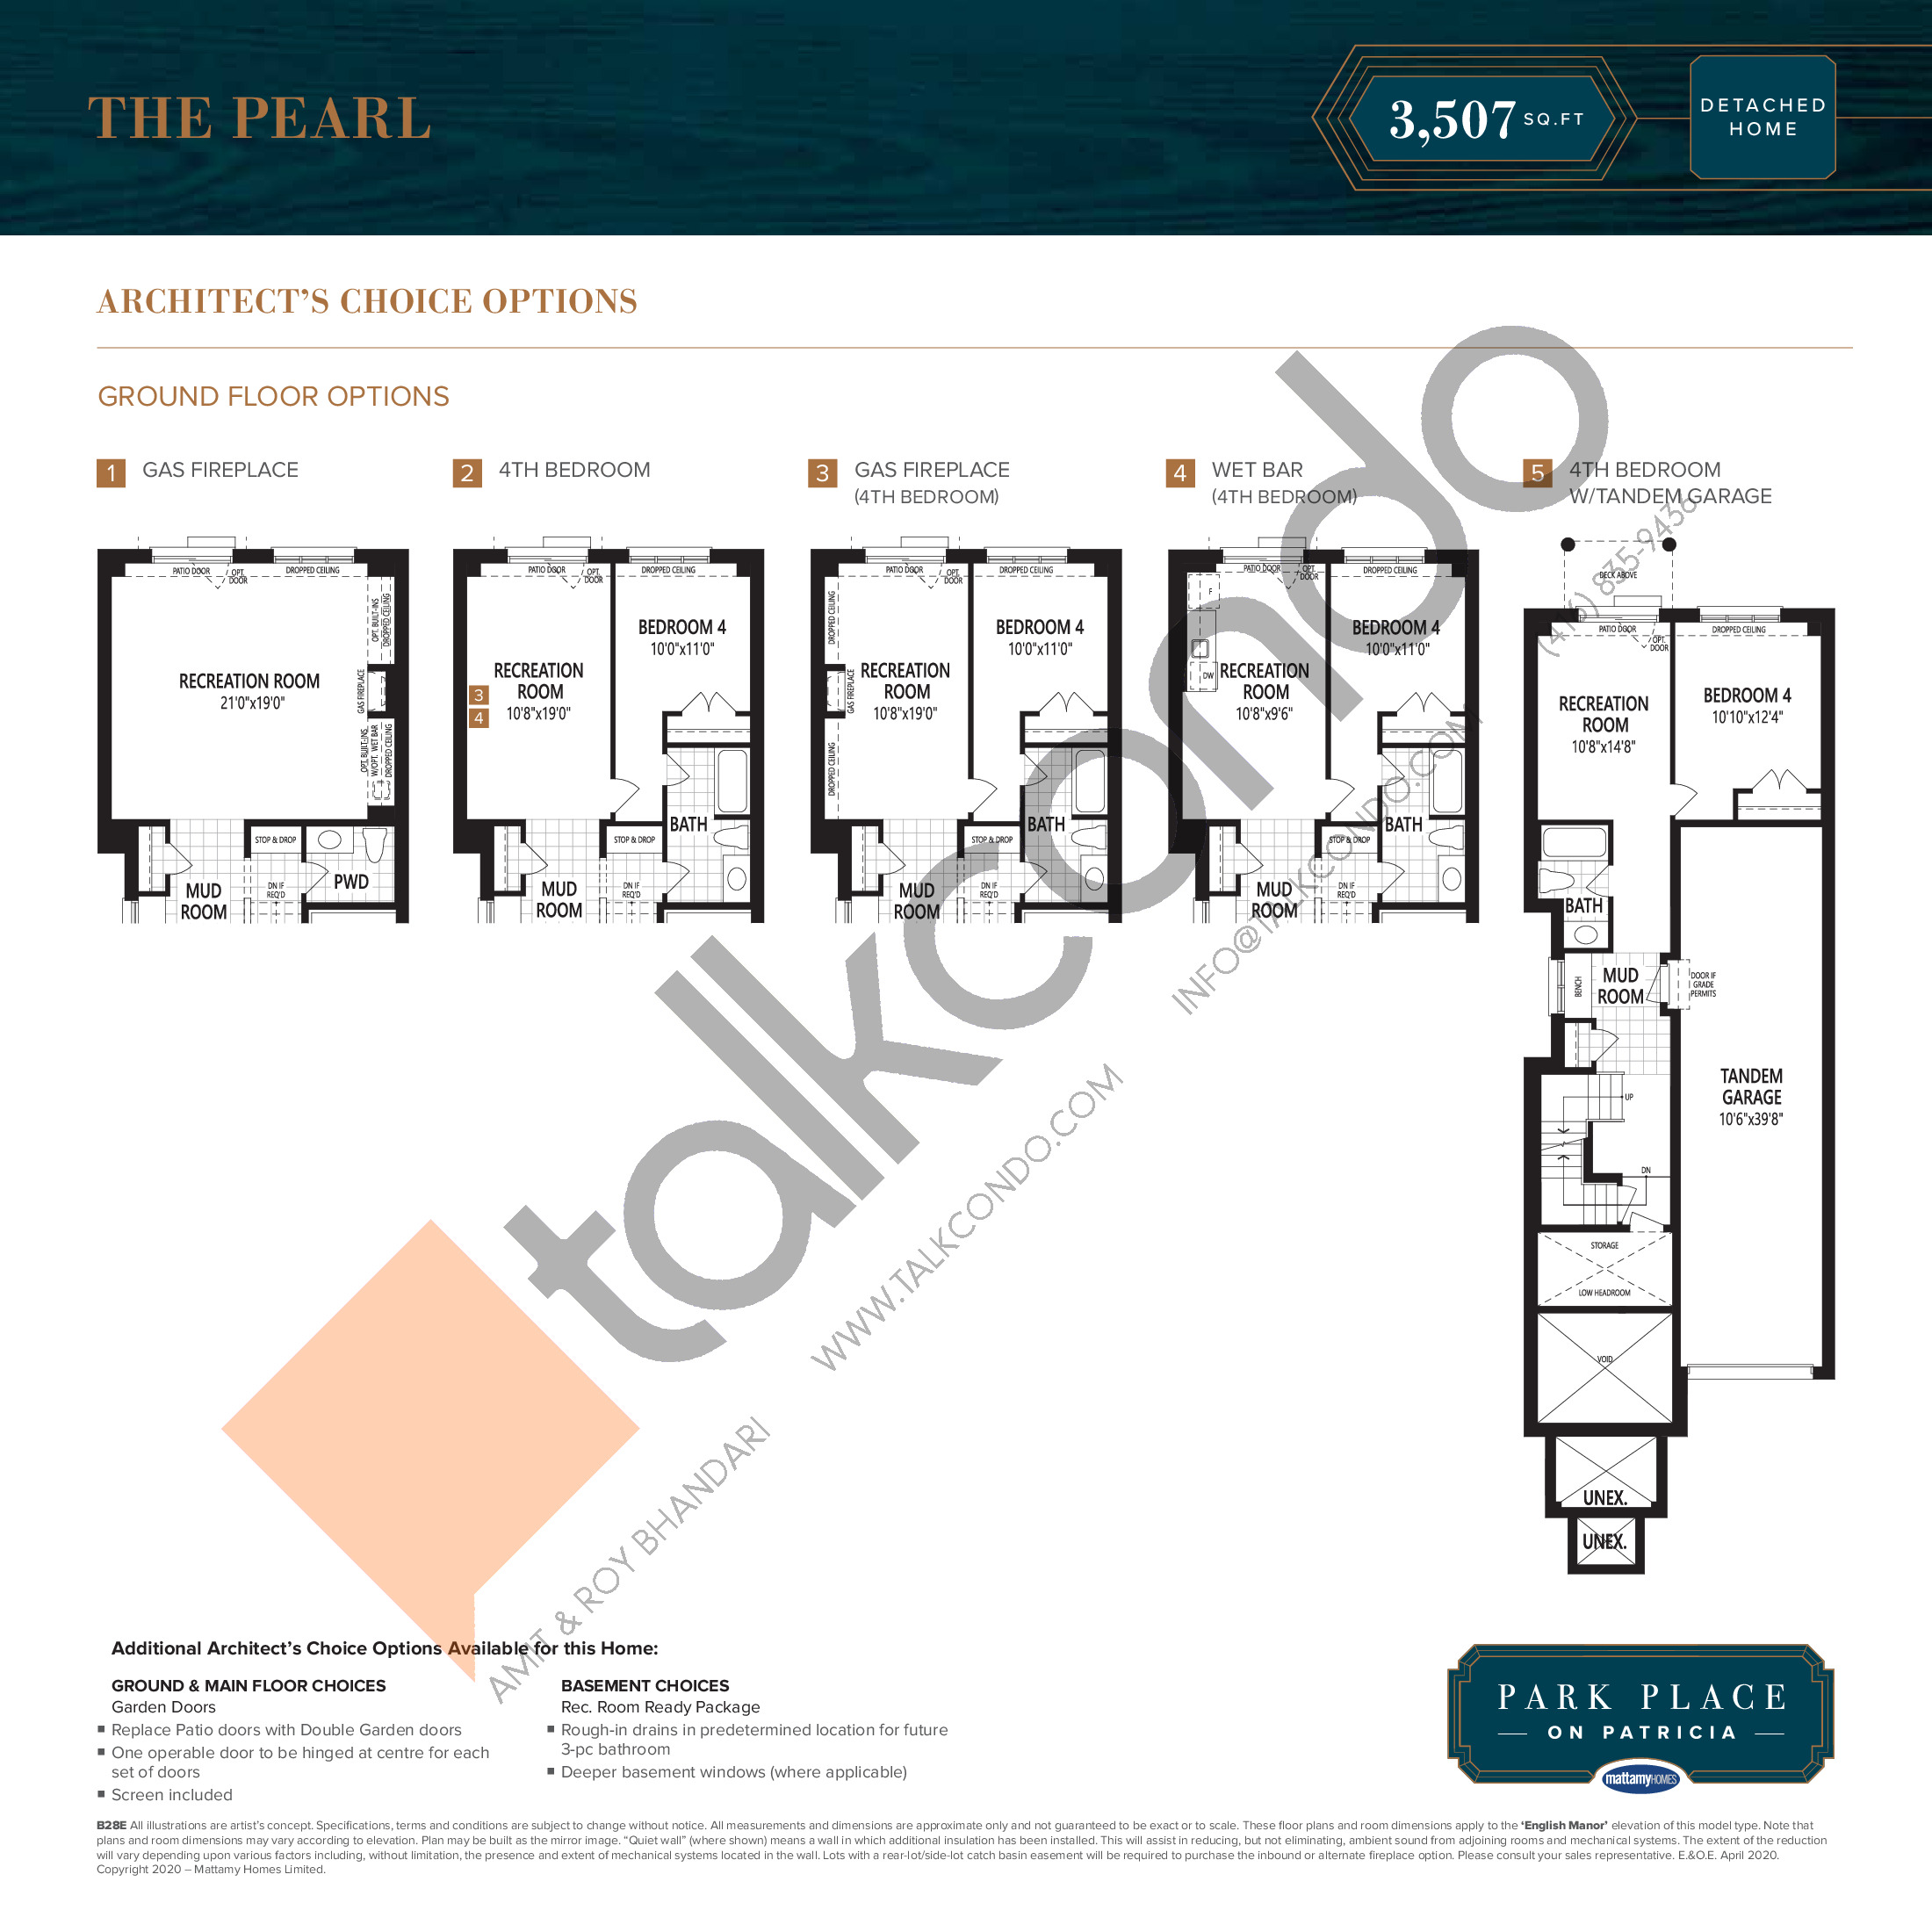 The Pearl (1/2) Floor Plan at Park Place on Patricia Towns - 3507 sq.ft